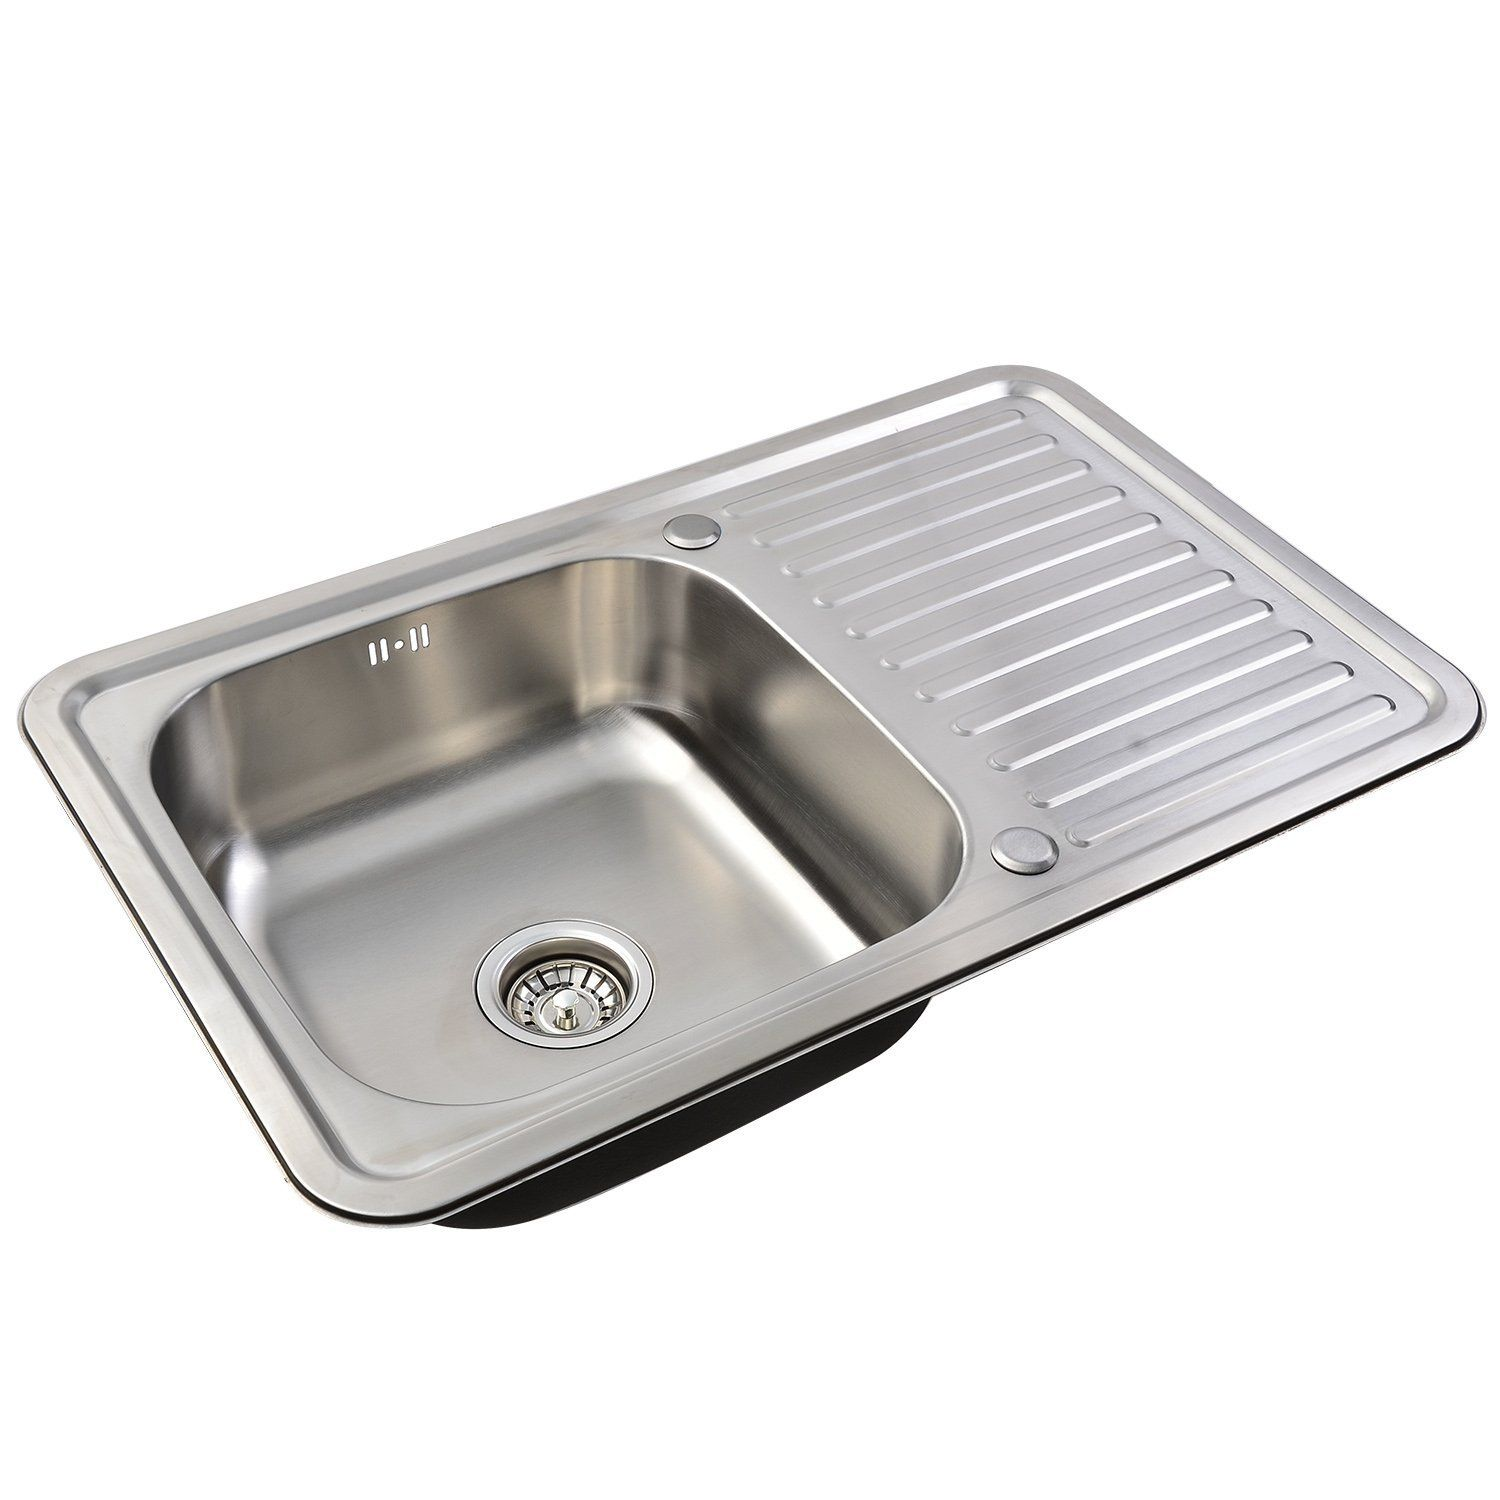 116 cm stainless steel double bowl single drainer inset sink right -  Single Bowl With Reversible Drainer Hapilife Brushed Square Stainless Steel Inset Kitchen Sinks With